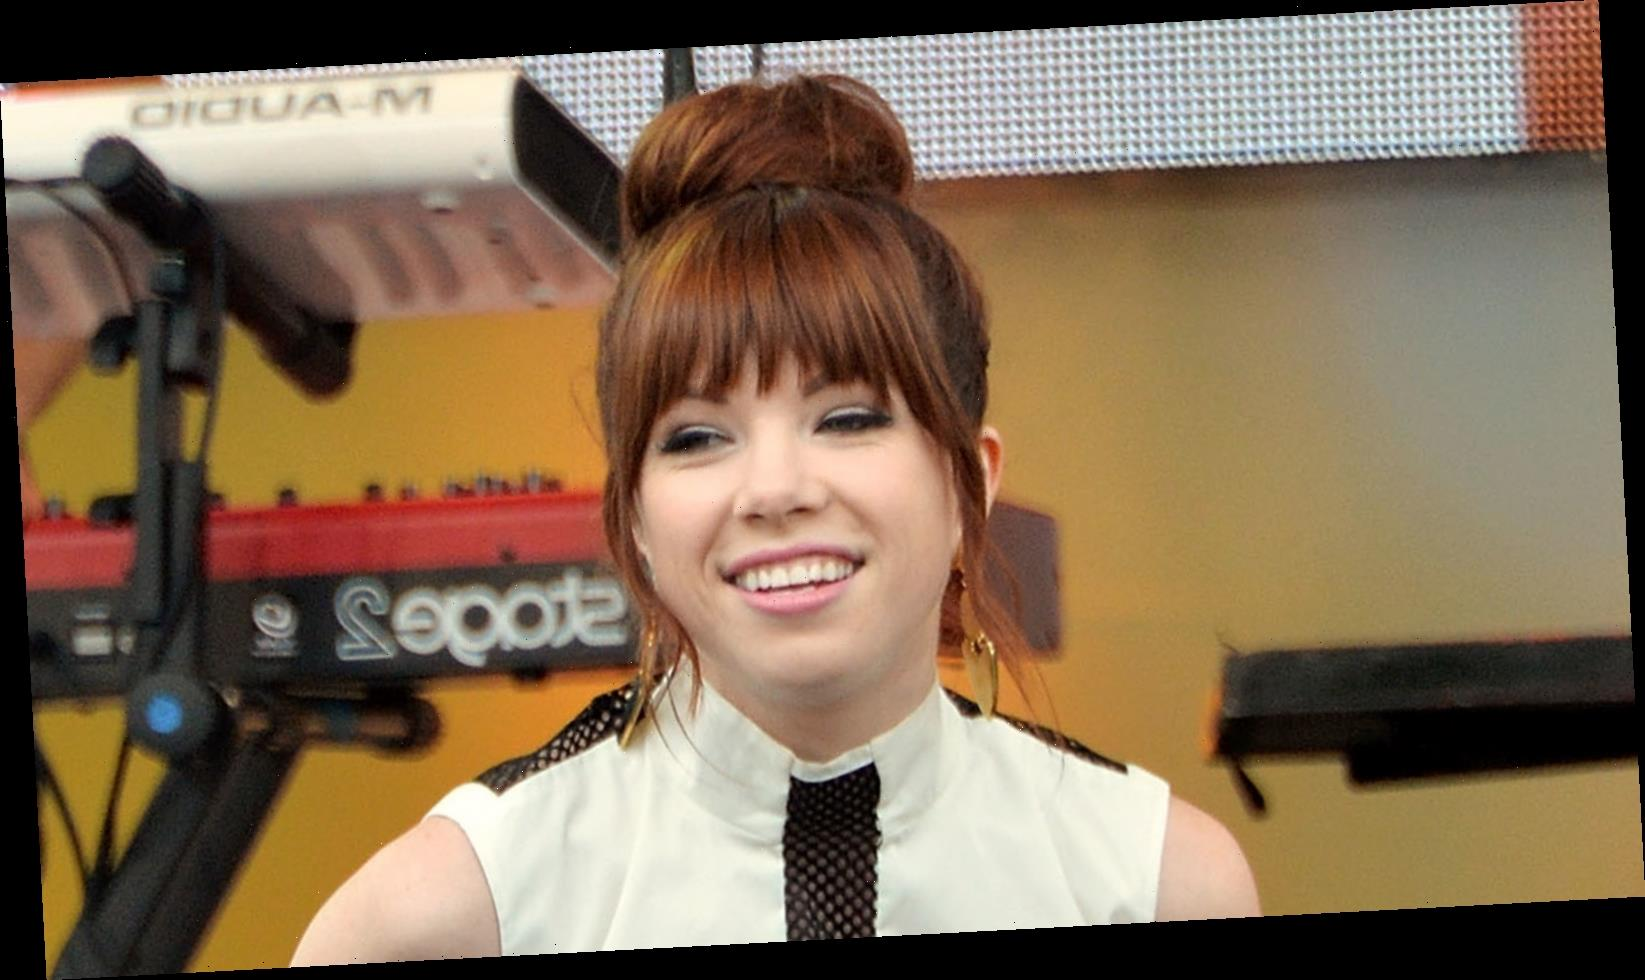 The Real Meaning Behind Call Me Maybe By Carly Rae Jepsen